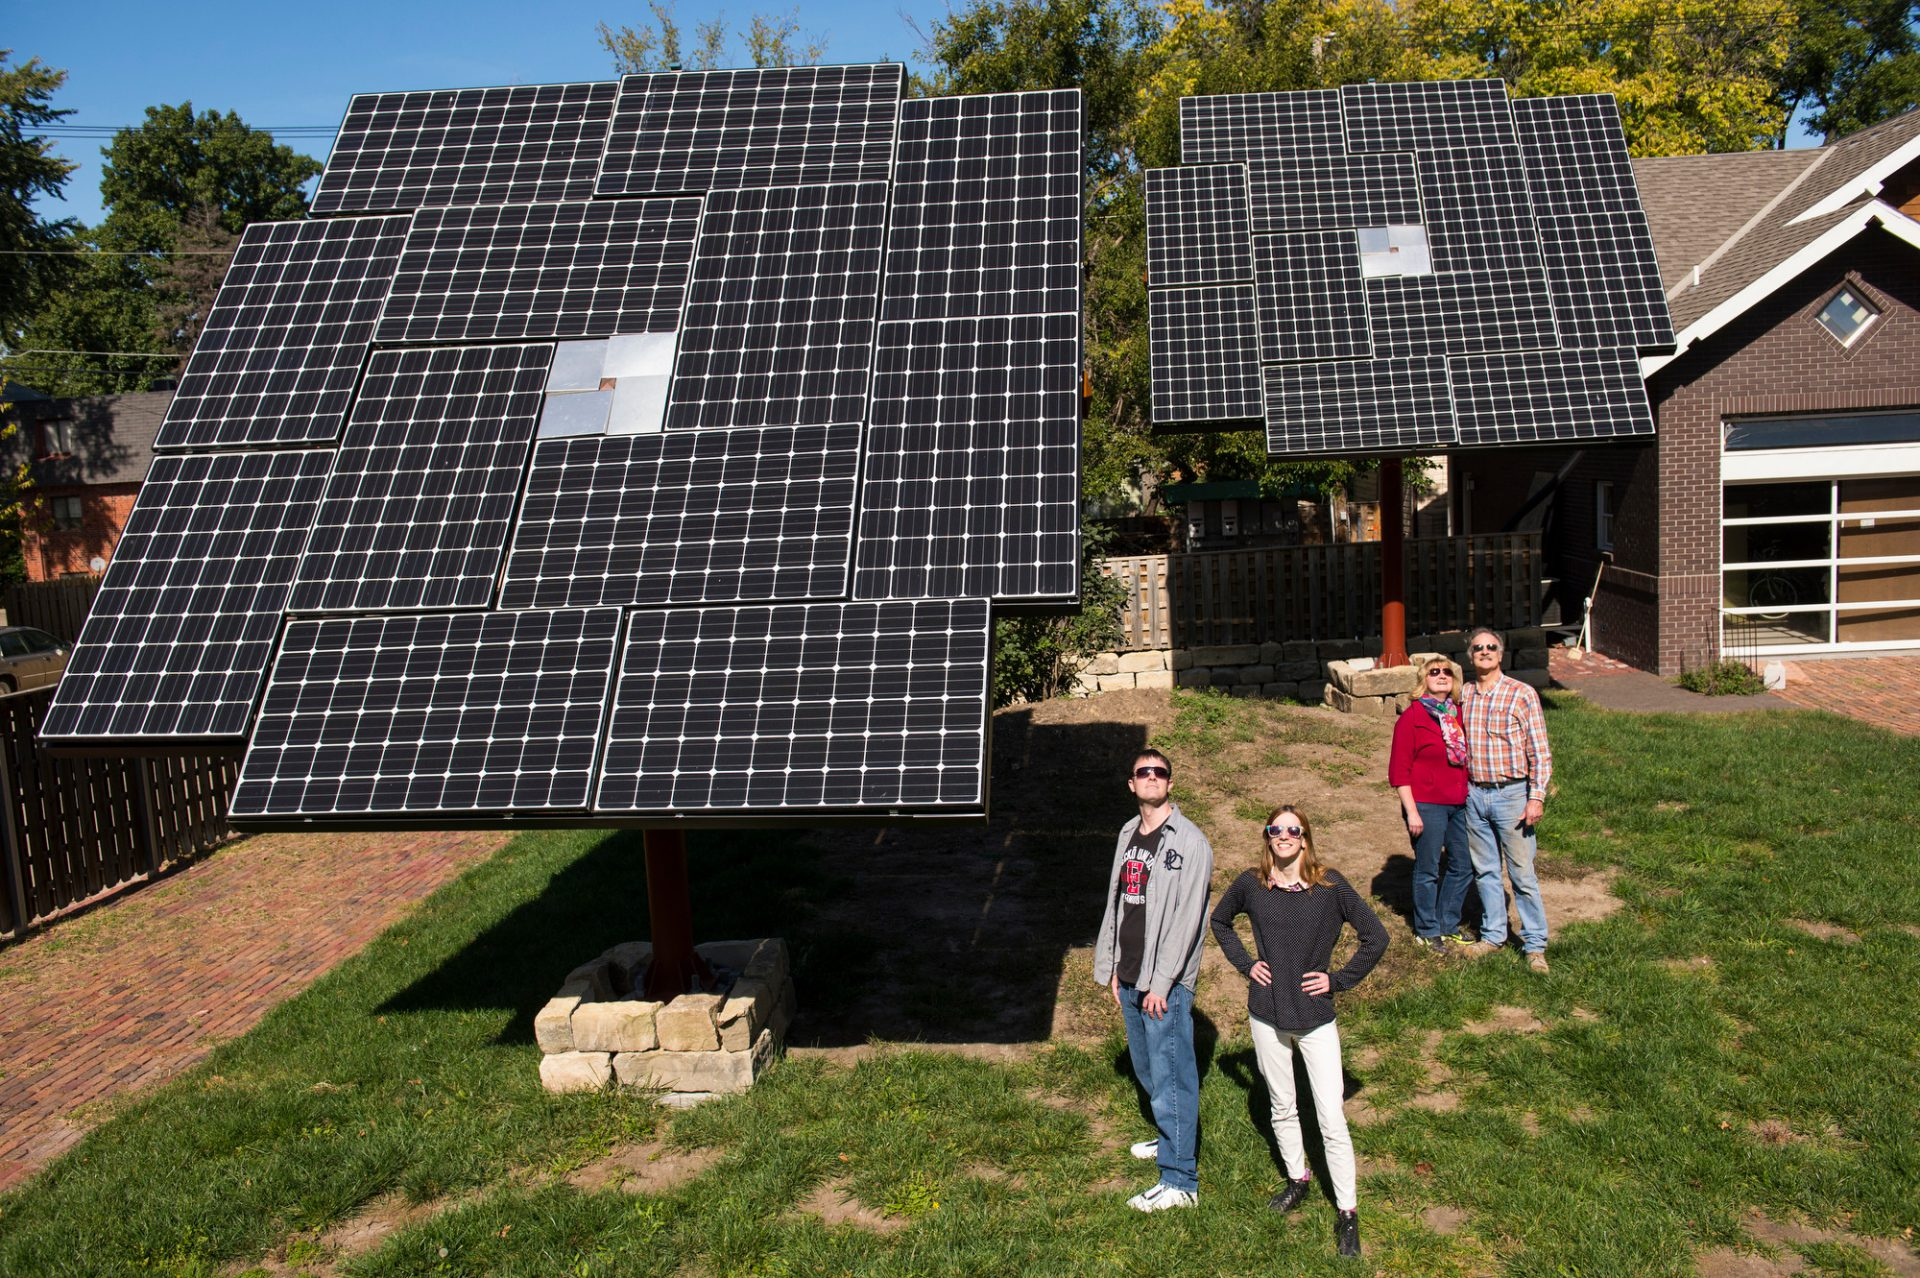 Photo: A family of four stands in their backyard with their new solar panels.